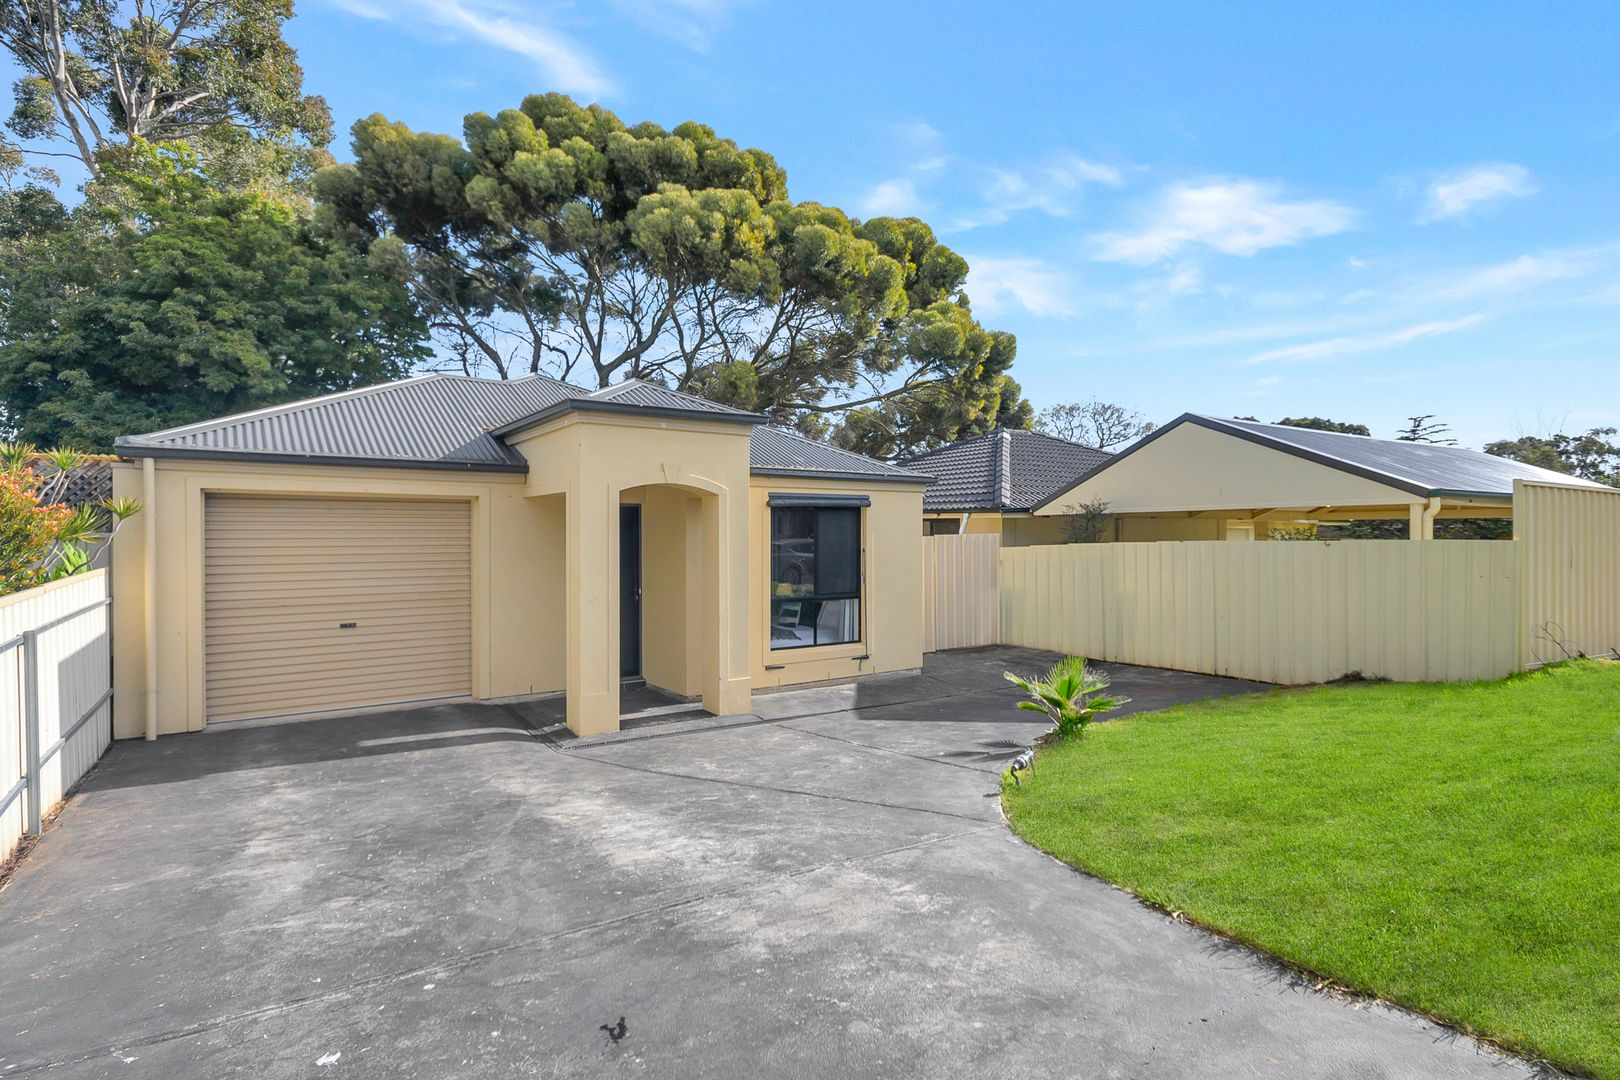 37 Christopher Road, Christie Downs SA 5164, Image 1